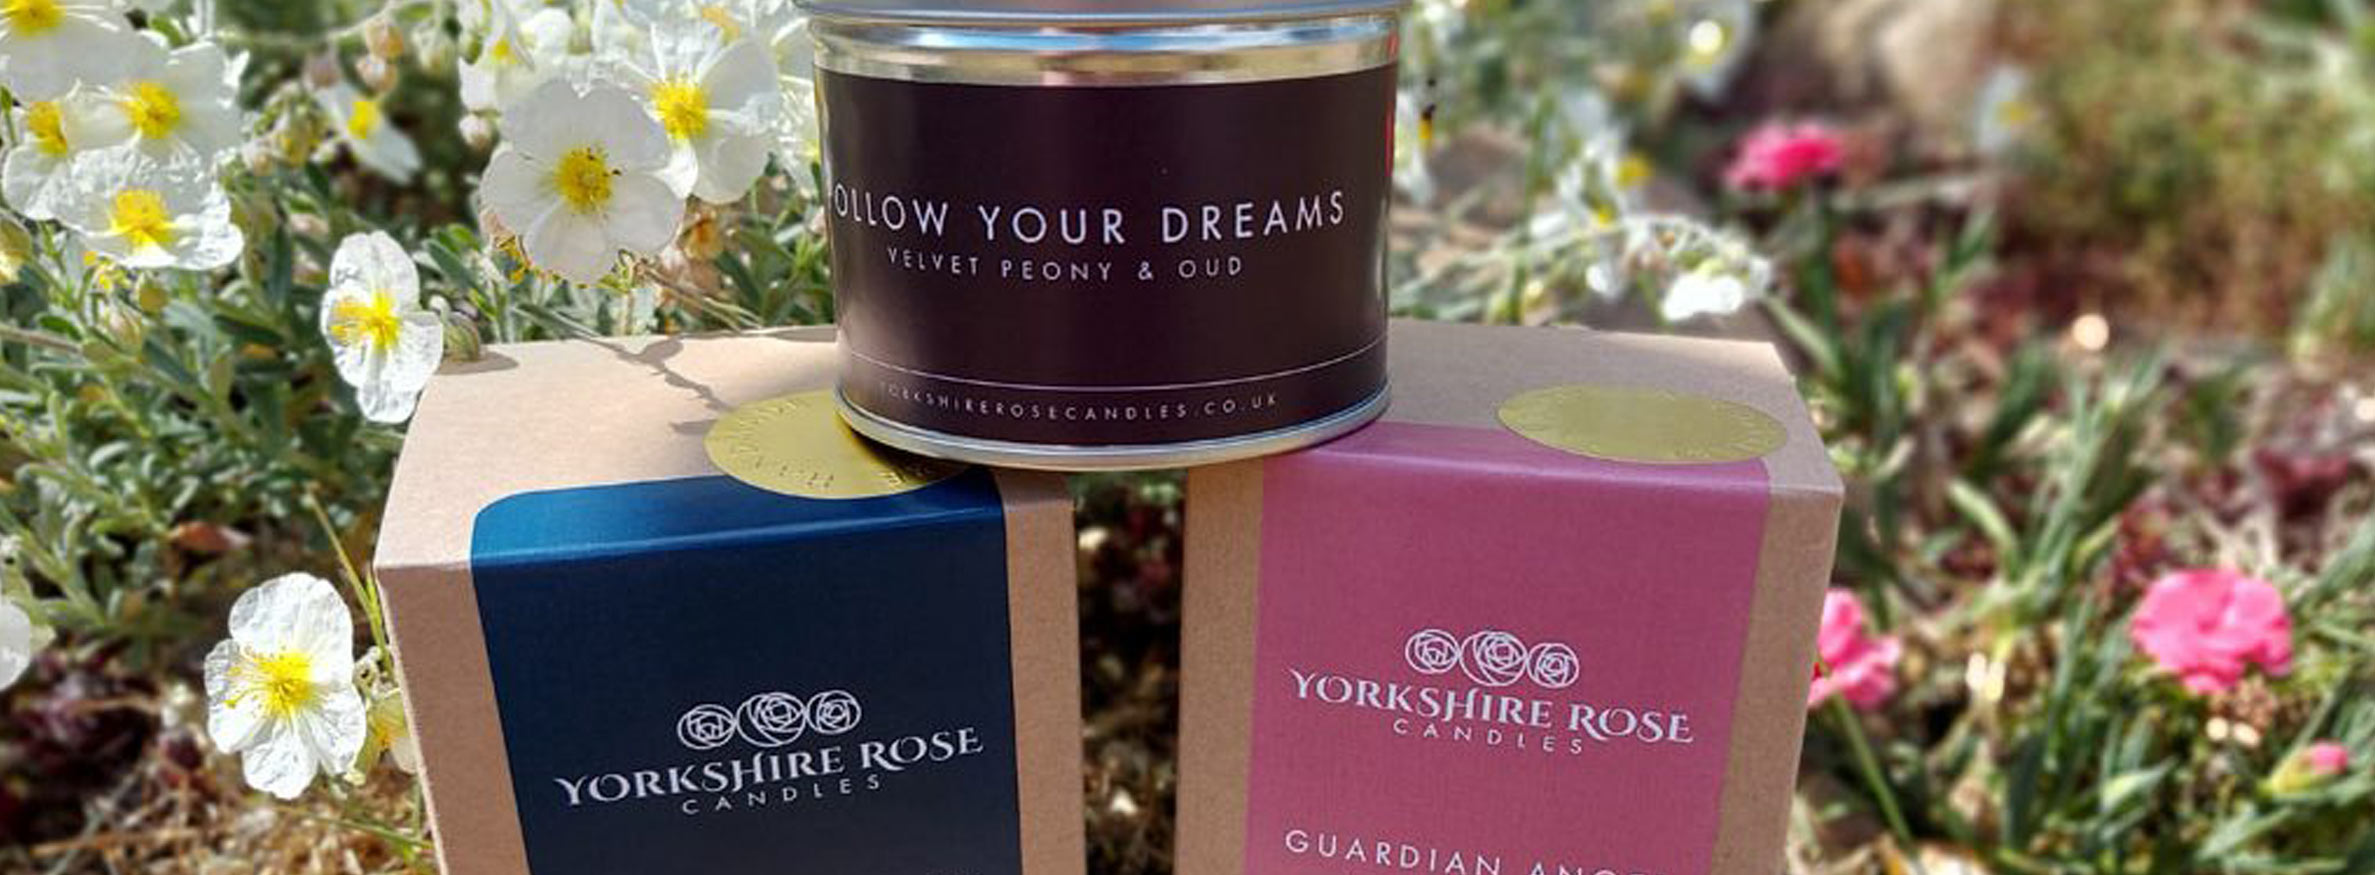 Fragrance box from Yorkshire Candles